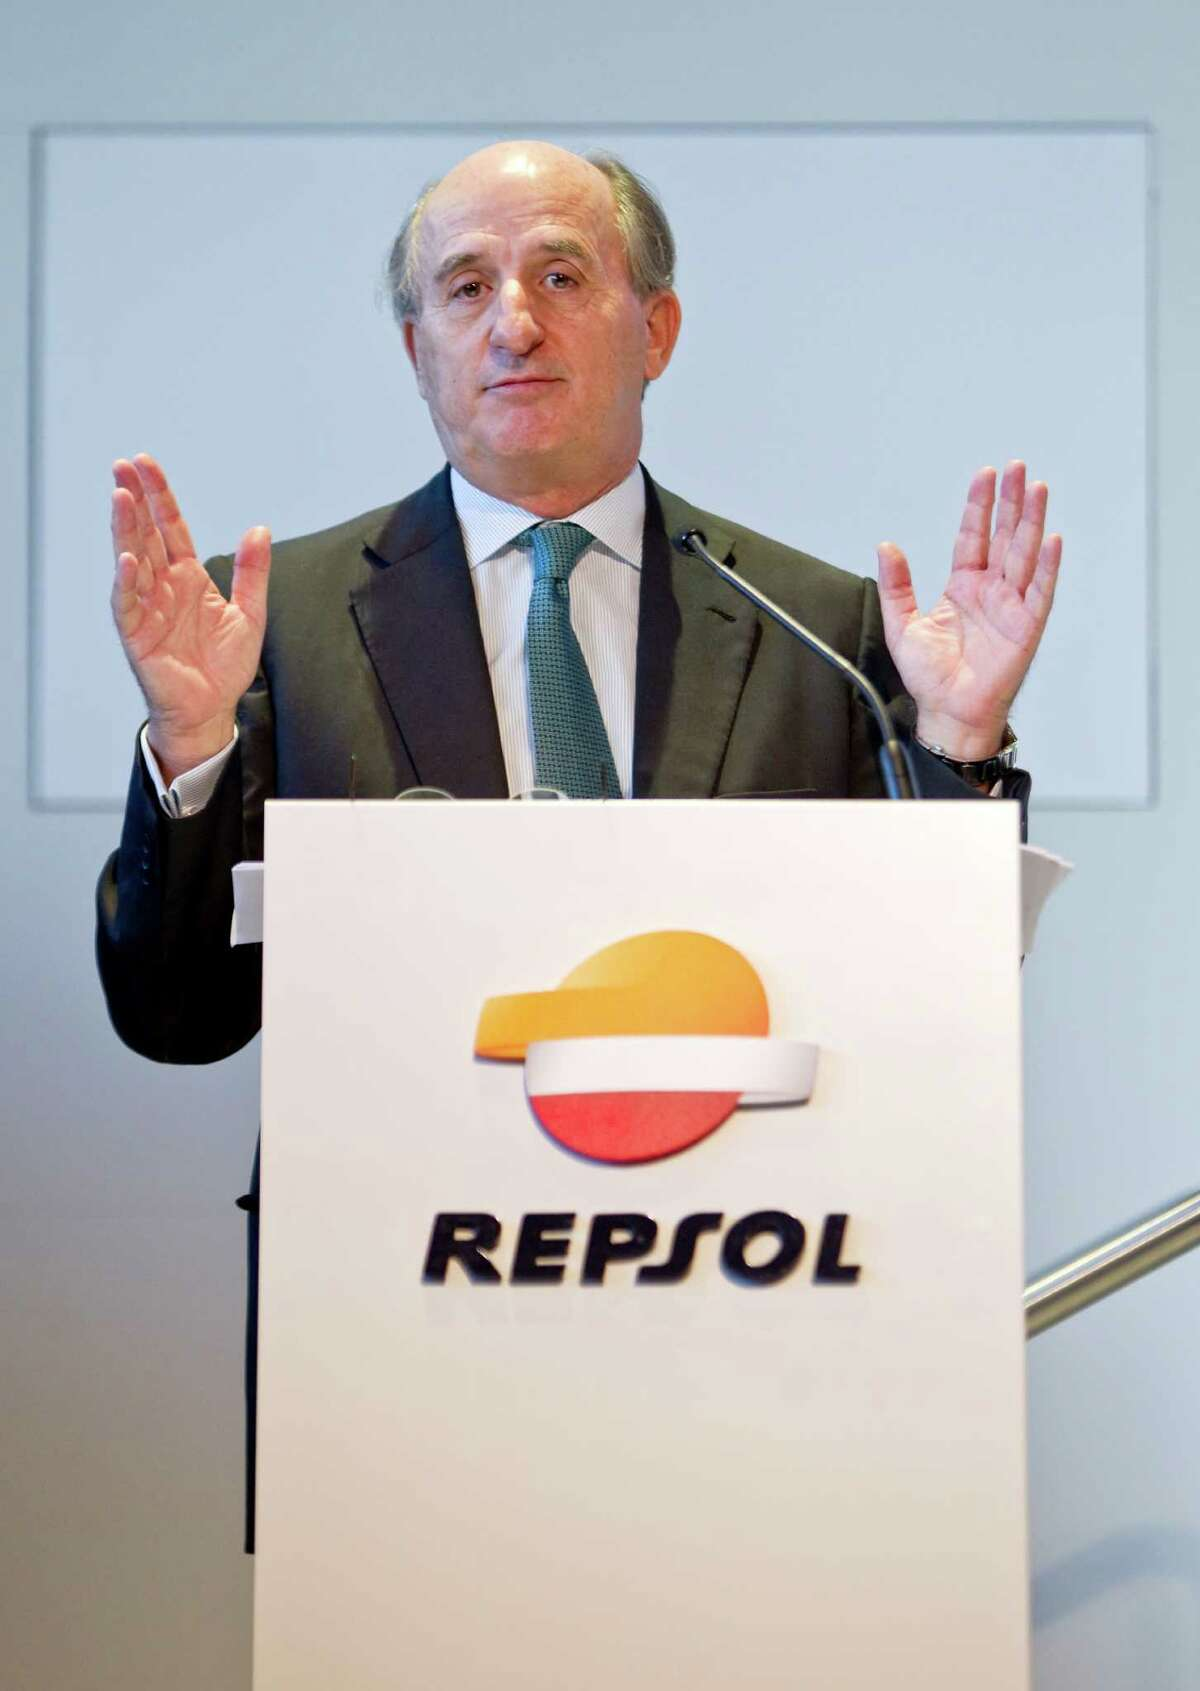 Repsol president Antonio Brufau gestures during a press conference in Madrid, Spain, Tuesday, May 29, 2012 to present the company's strategic future plans. (AP Photo/Alberto Di Lolli)